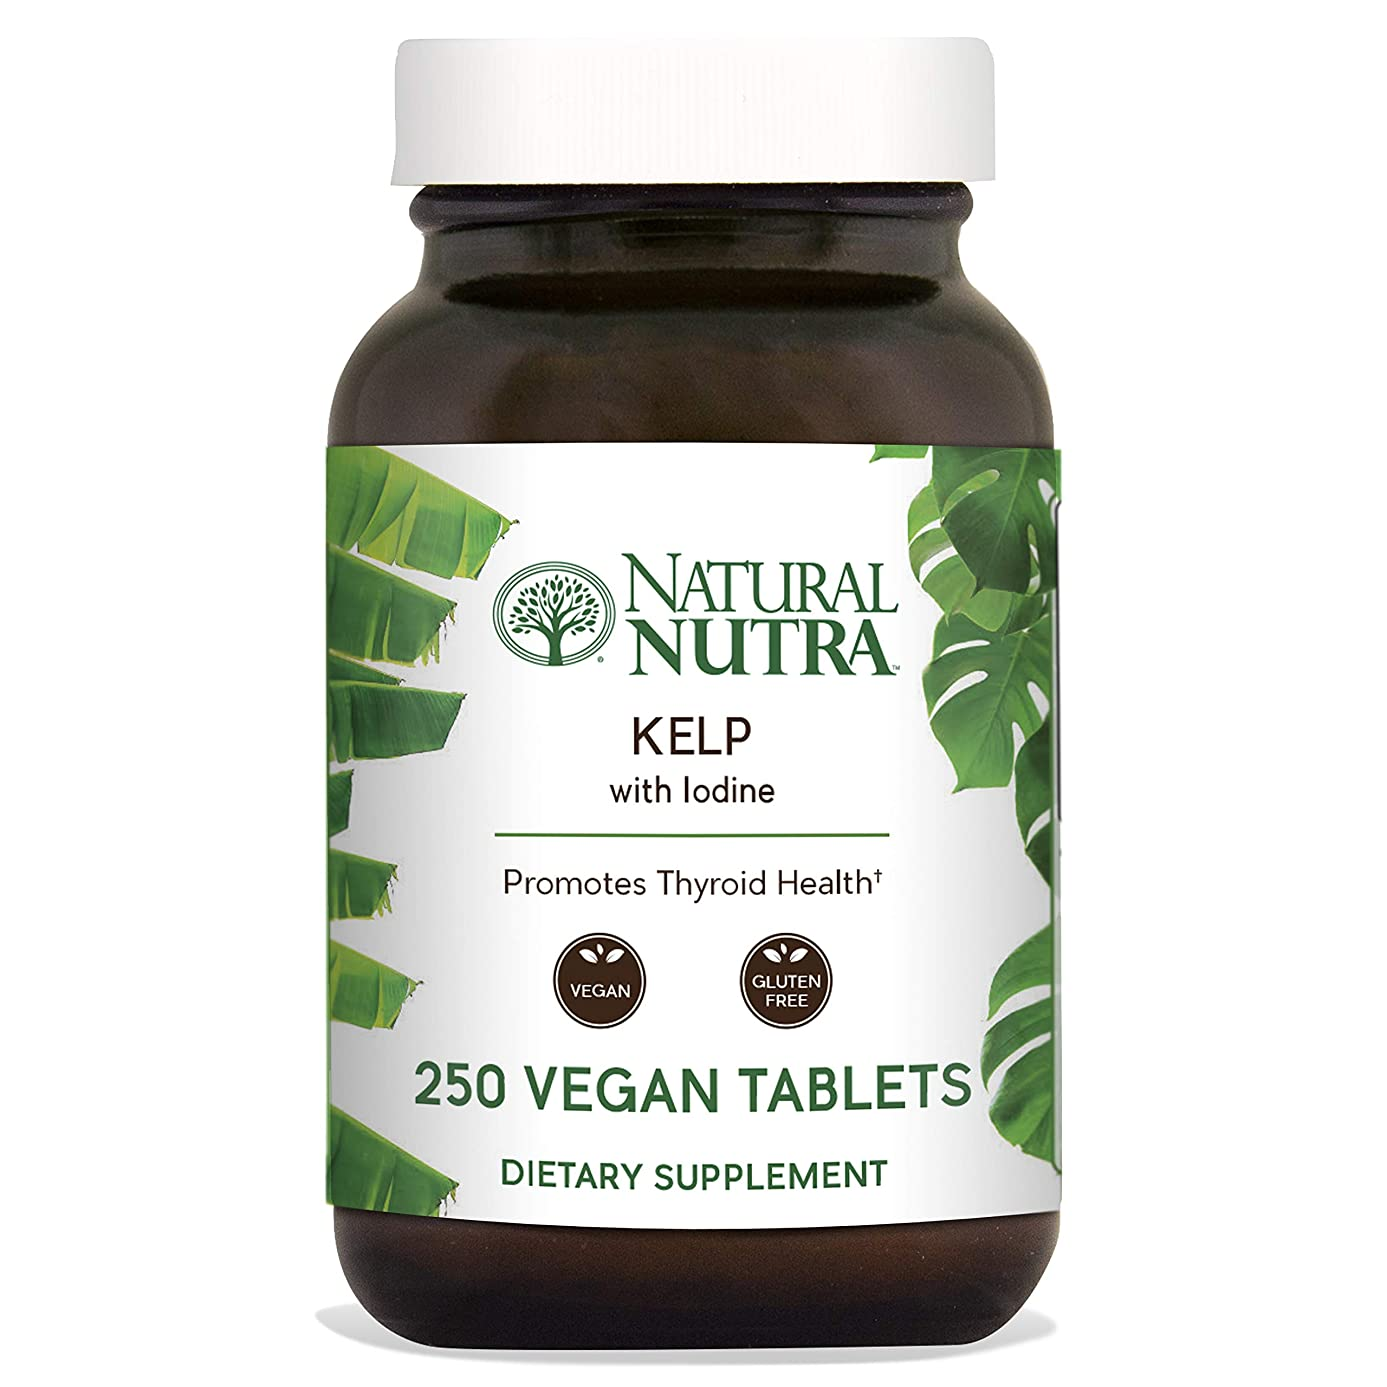 Natural Nutra Kelp Iodine Supplement, North Atlantic Sourced Seaweed Extract, 225 mcg, 250 Vegetarian Tablets